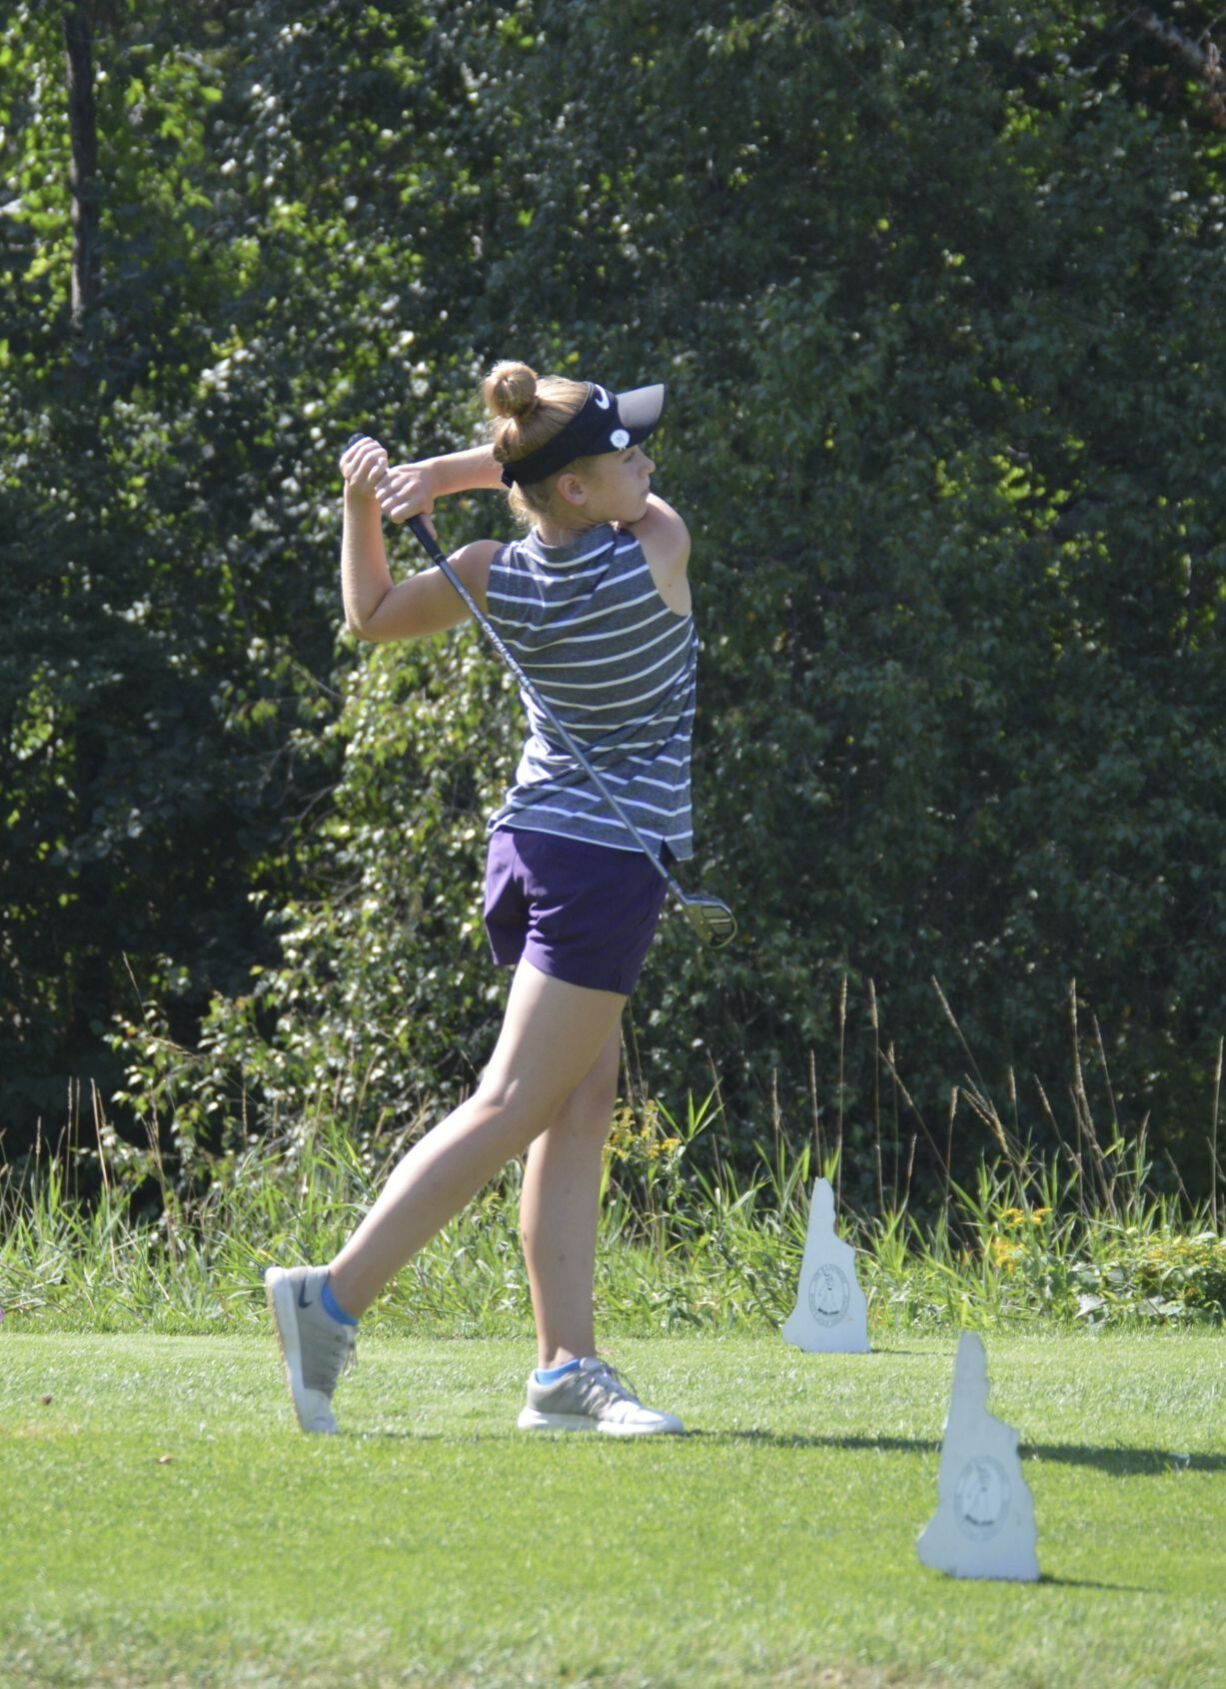 Fennessy off the tee